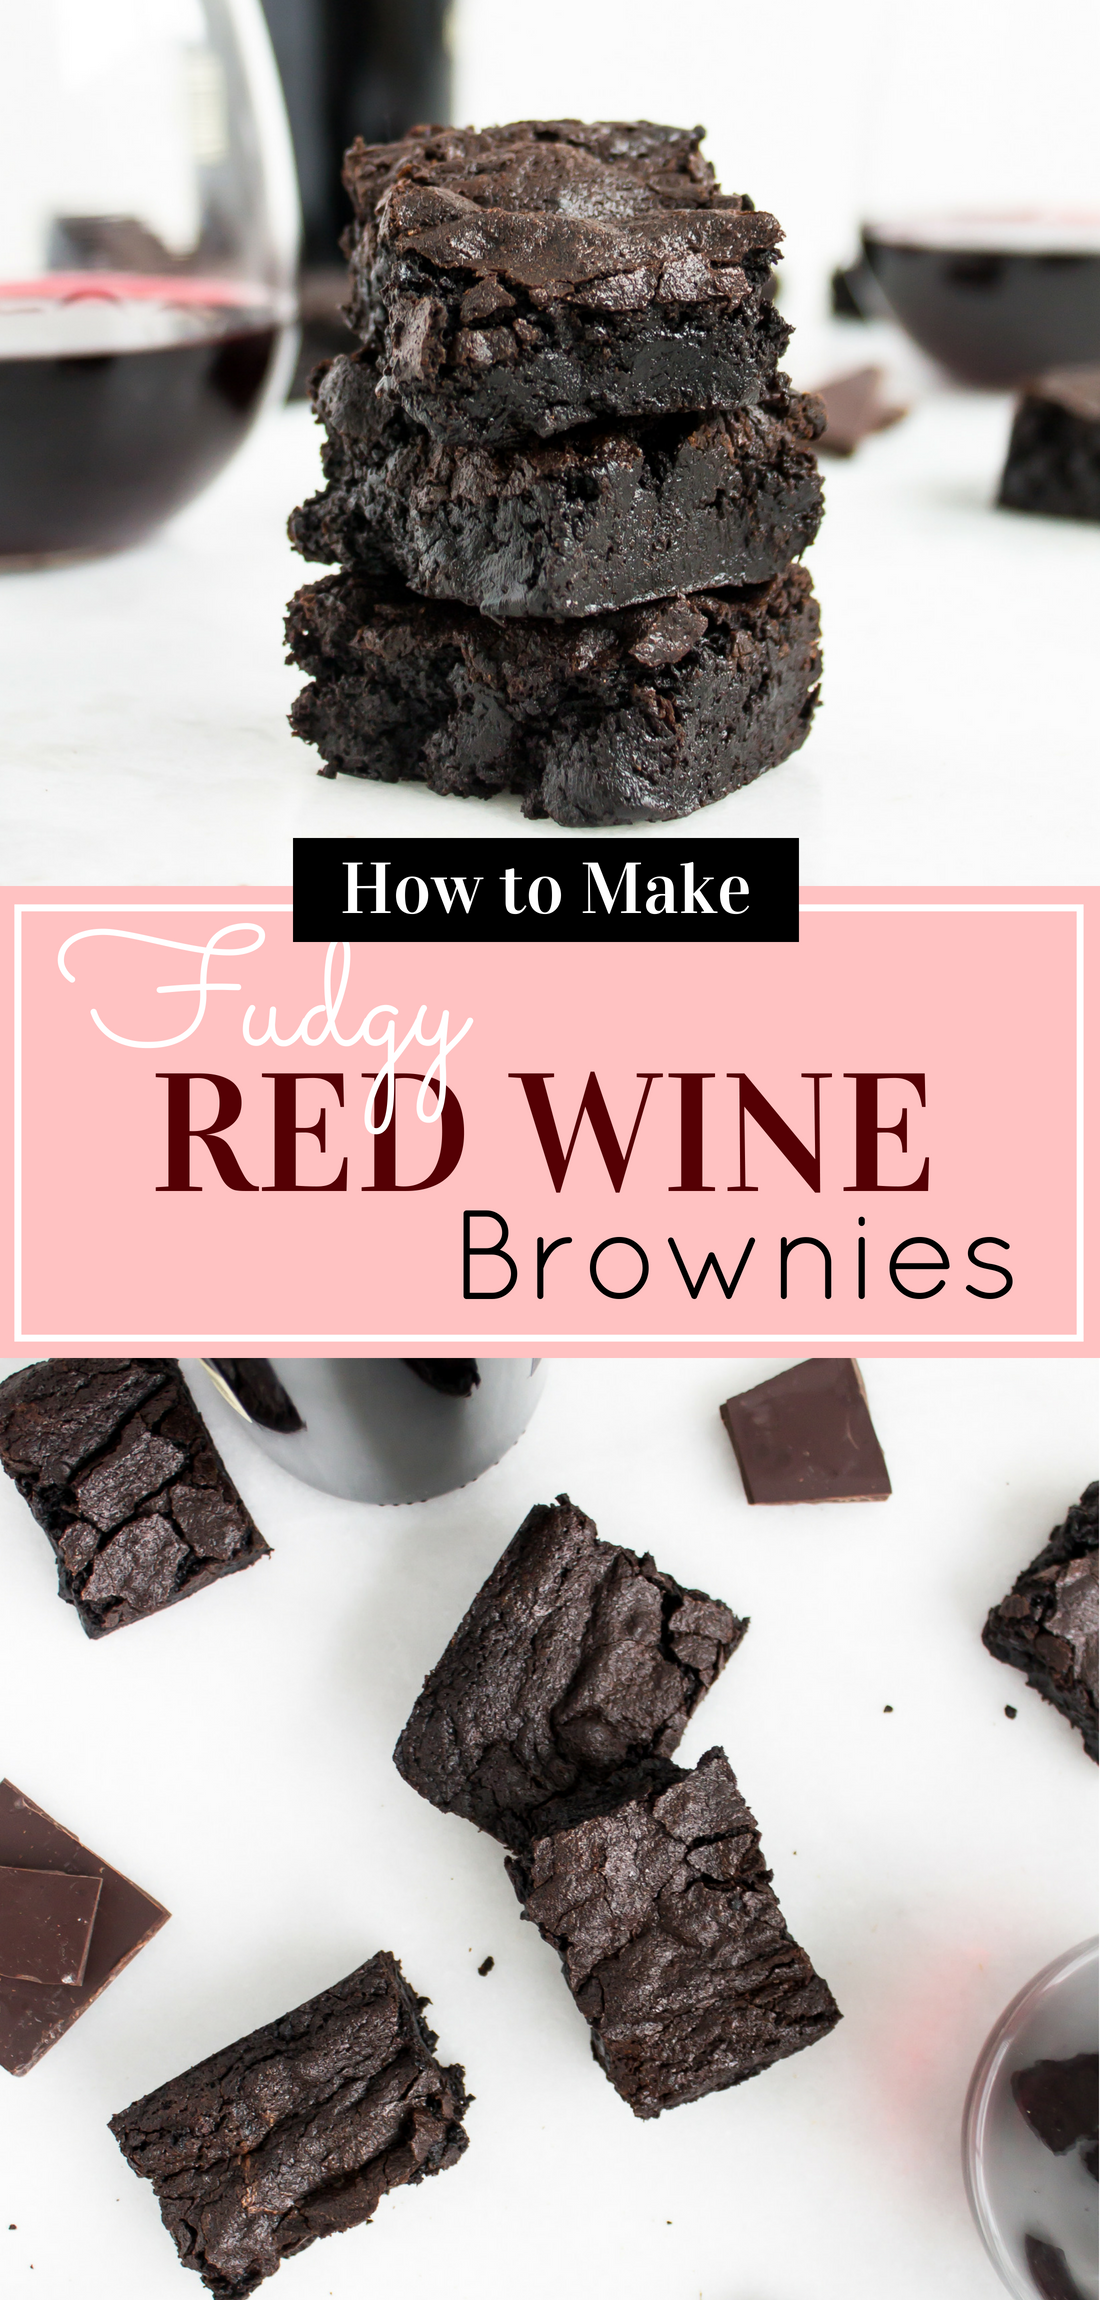 If you love brownies, and you love wine - because, who doesn't love BOTH of those things? - you are going to love, love, love these fudgy red wine brownies. #brownies #redwinebrownies #dessert #boozybrownies #brownierecipe | glitterinc.com | @glitterinc